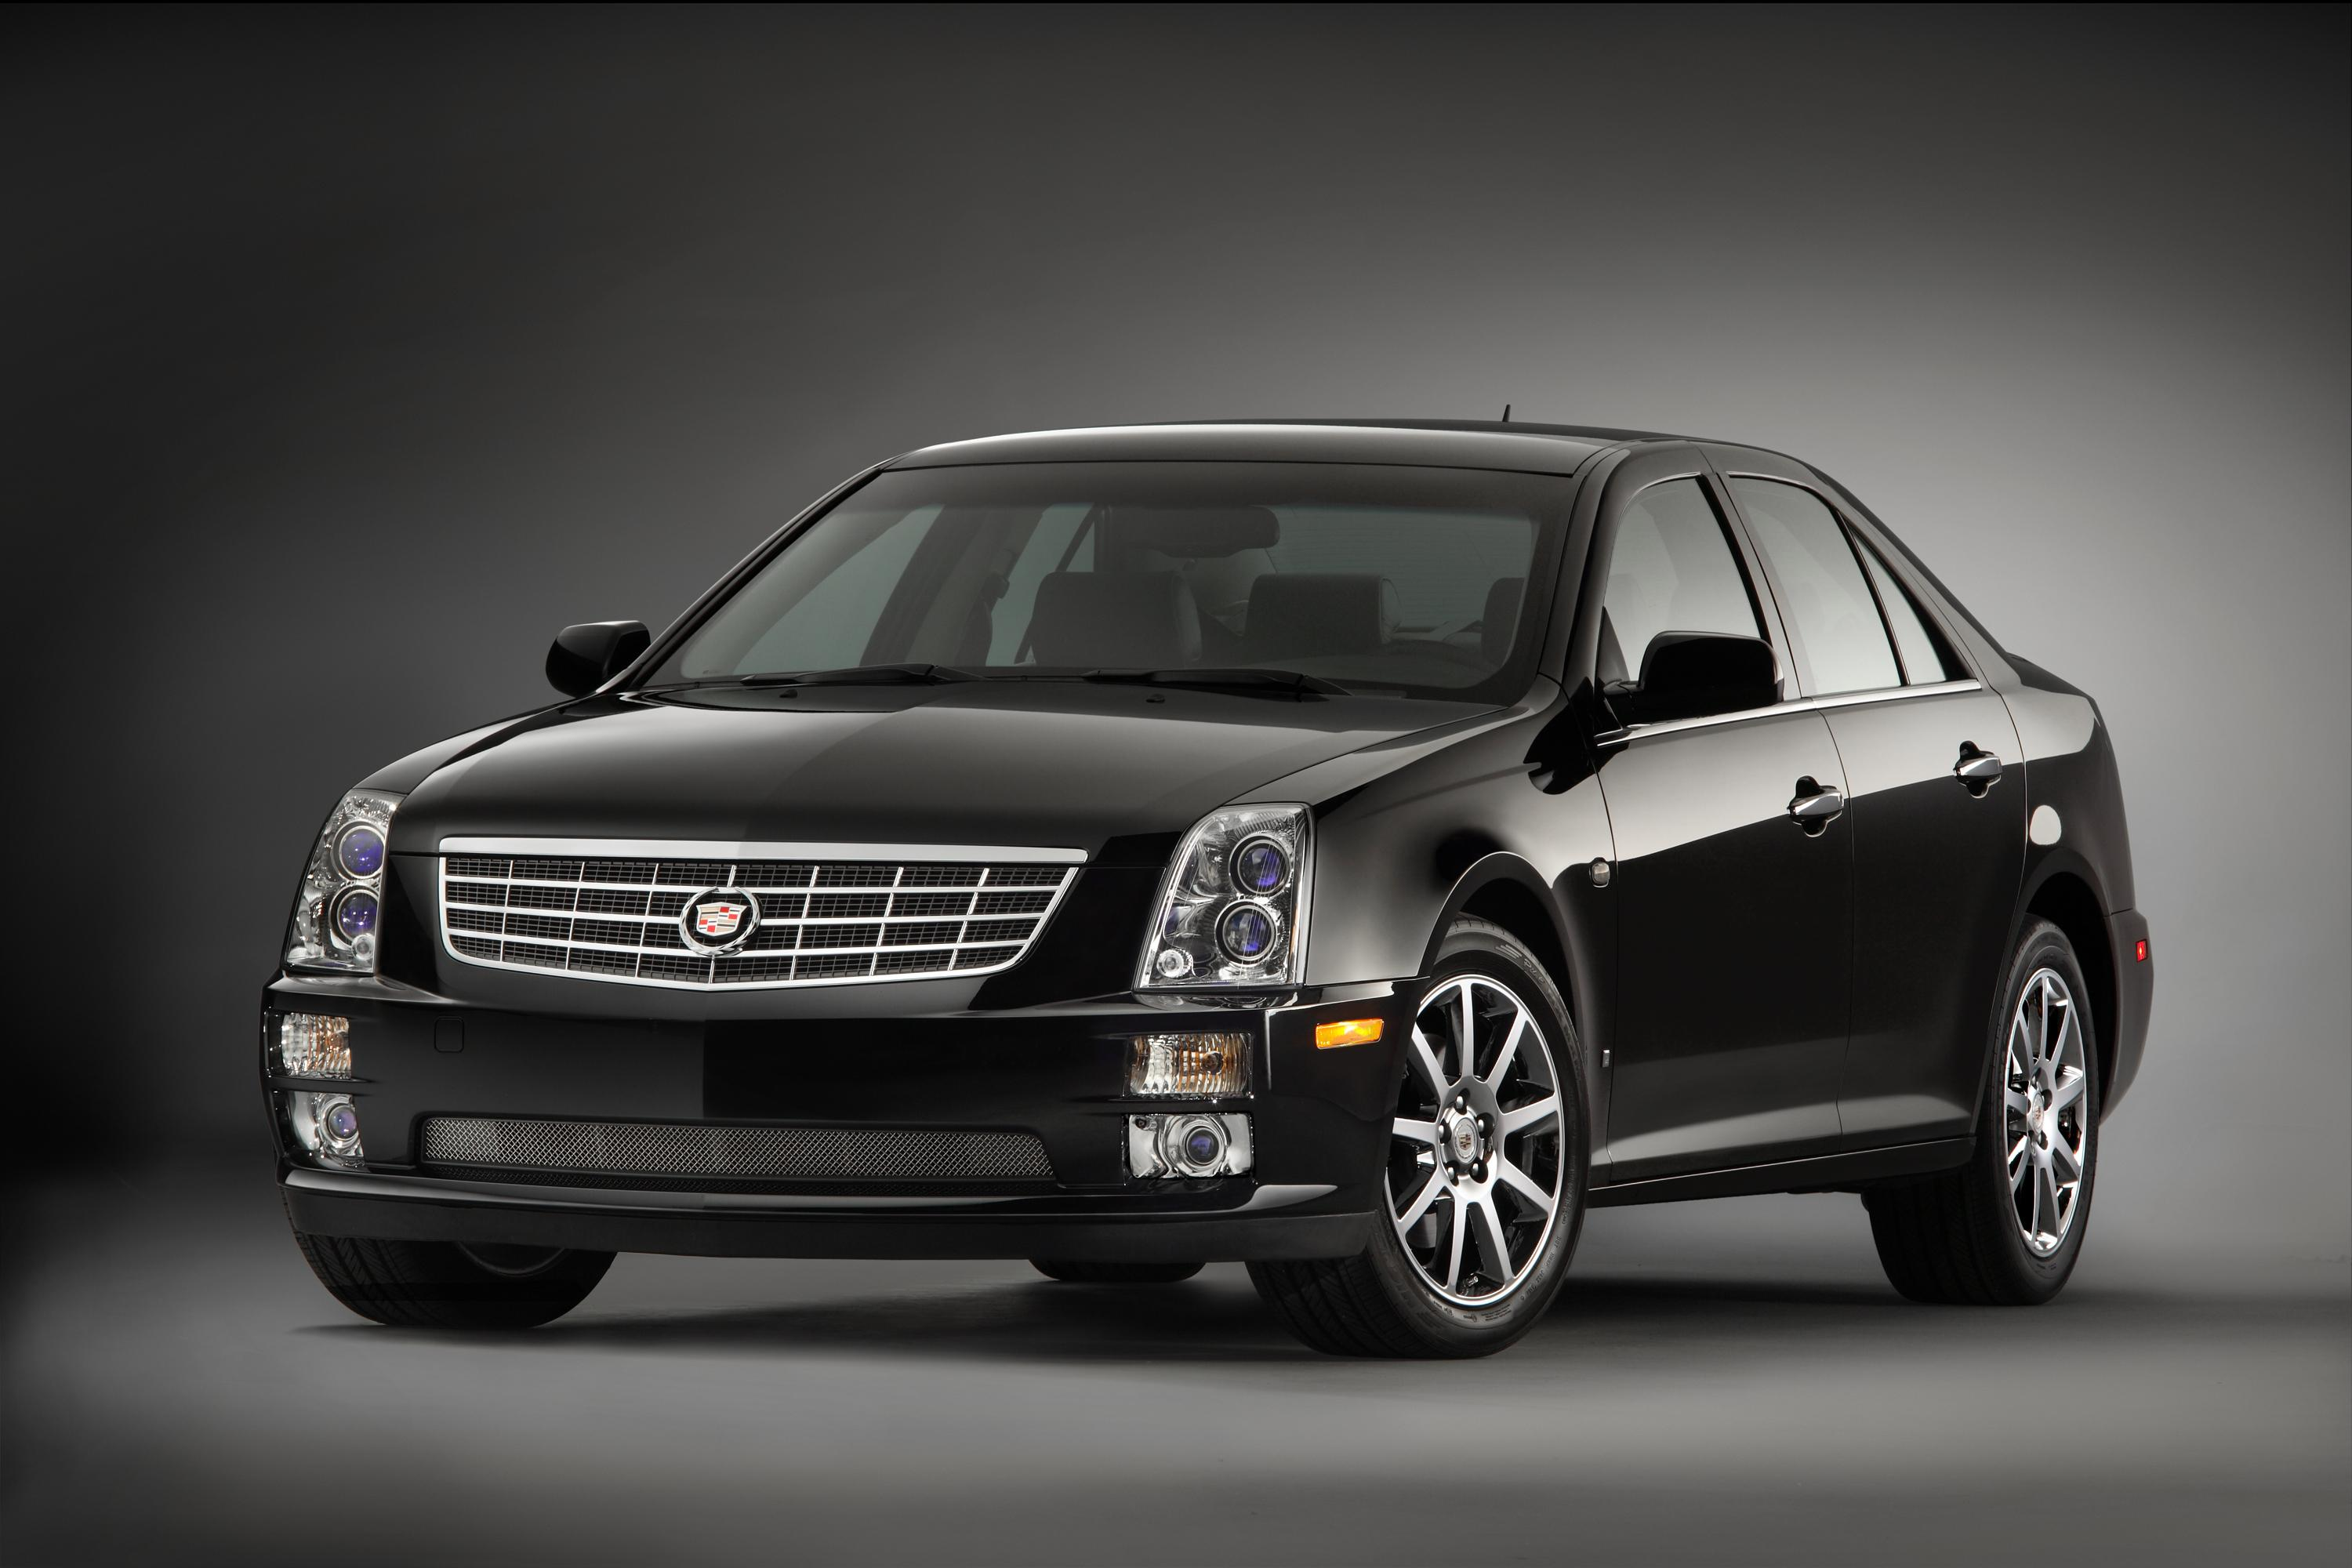 2007 cadillac sts platinum review gallery top speed. Black Bedroom Furniture Sets. Home Design Ideas